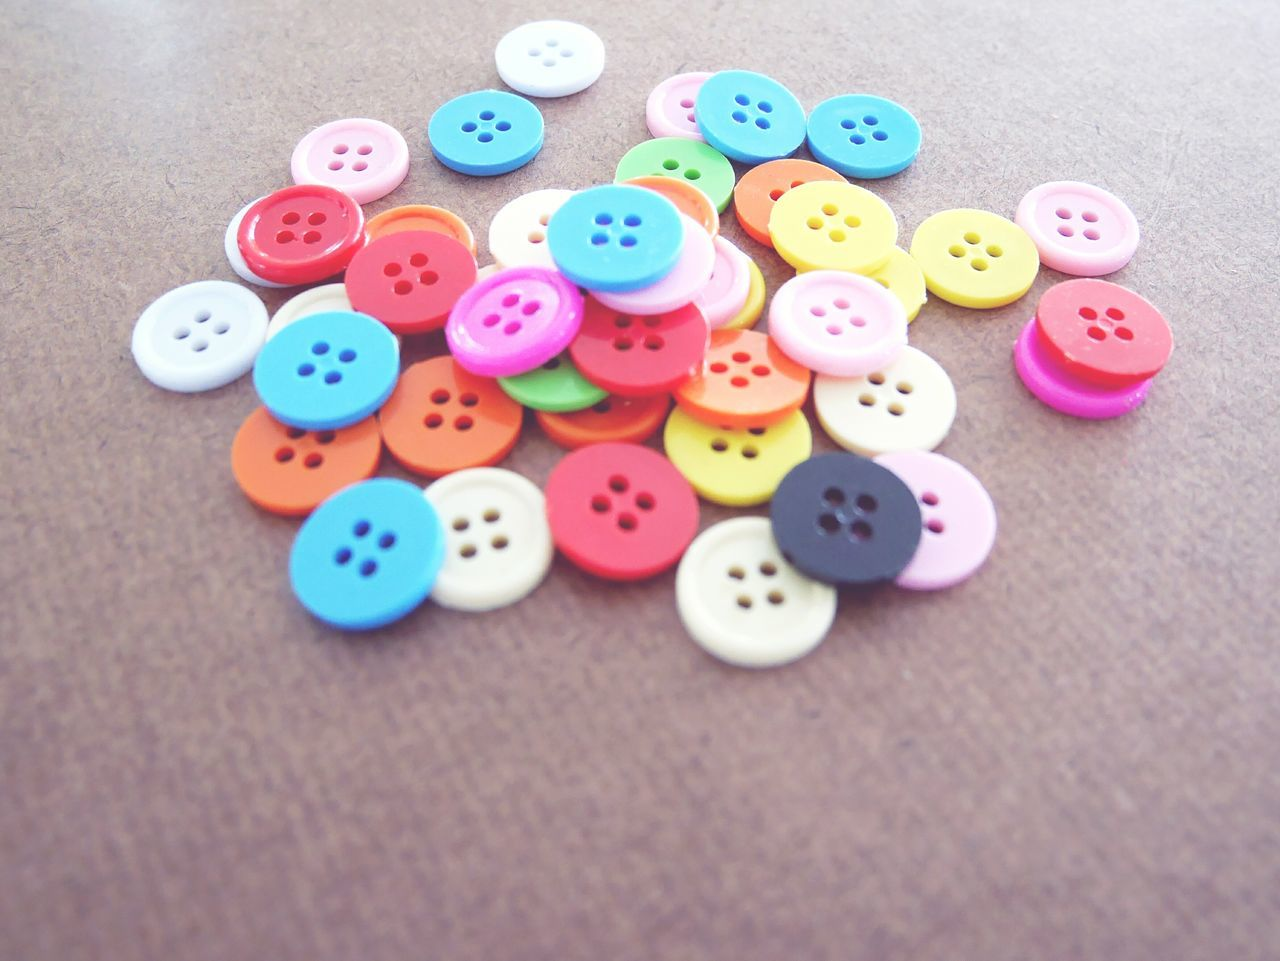 Studs Multi Colored Variation Button Large Group Of Objects Choice Sewing Item Indoors  Arrangement Needlecraft Product Close-up EyeEm EyeEm Gallery